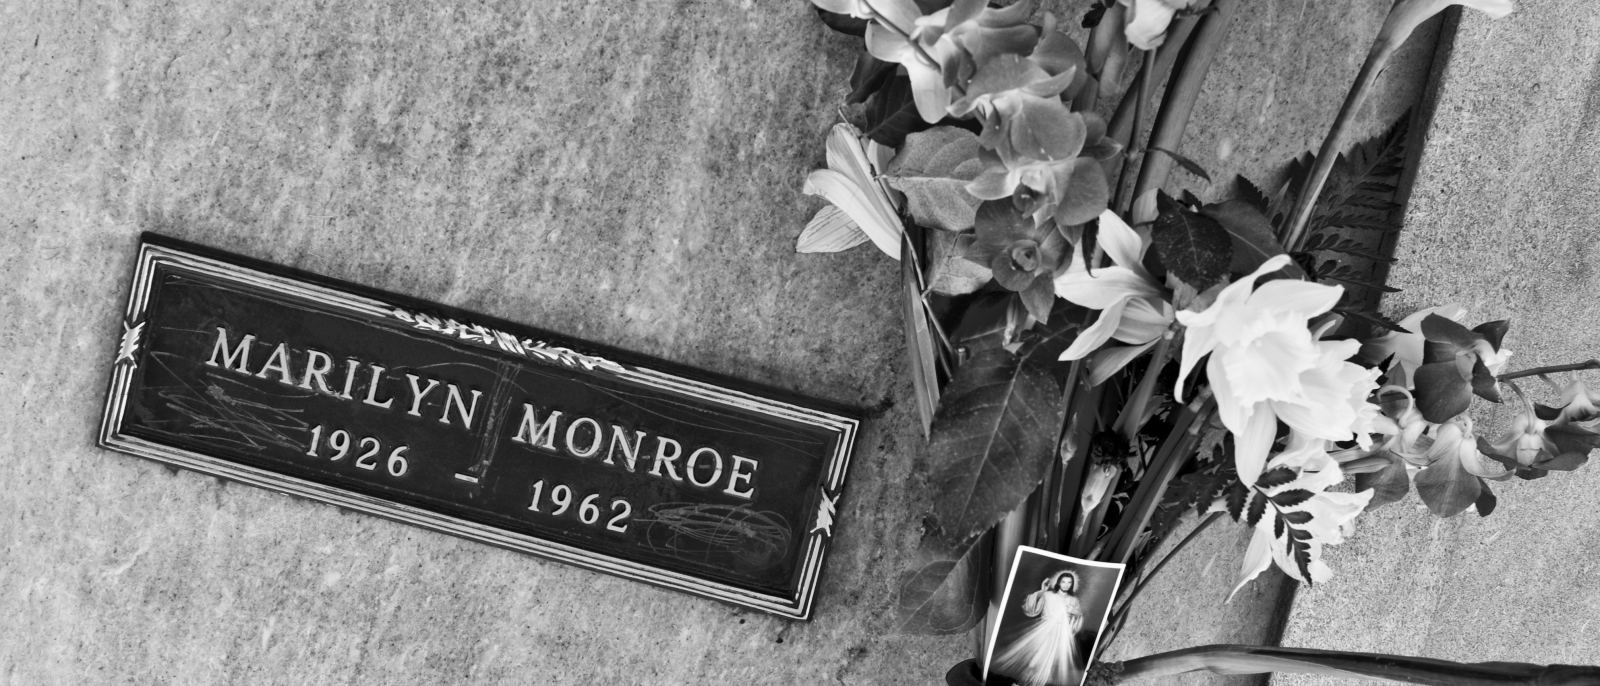 Marilyn Monroe's crypt atPierce Brothers Westwood Village Memorial Park & Mortuary